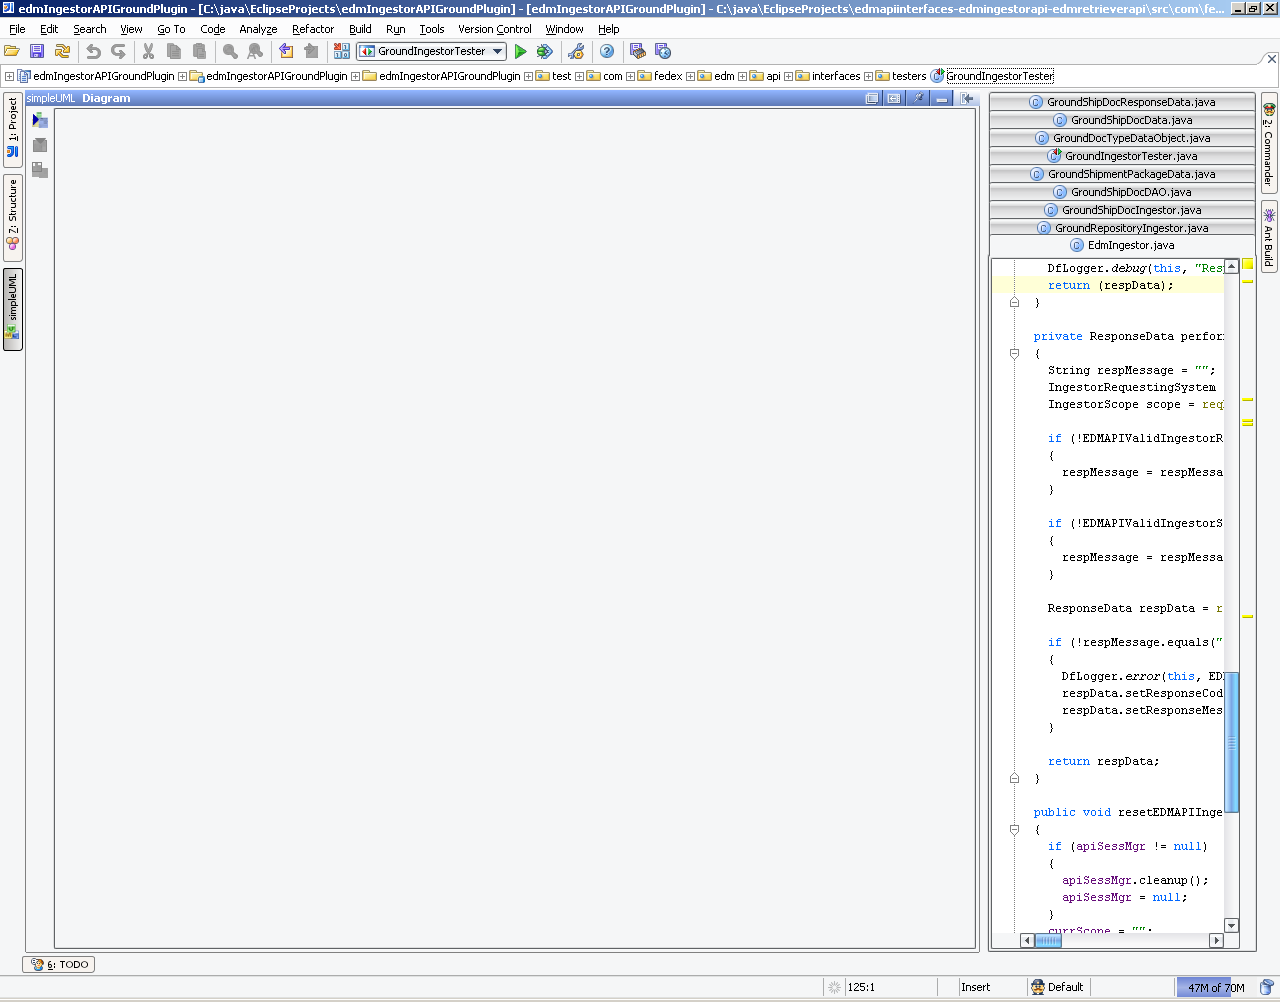 Howto draw basic UML diagrams w/ Idea 7? - IDEs Support ...